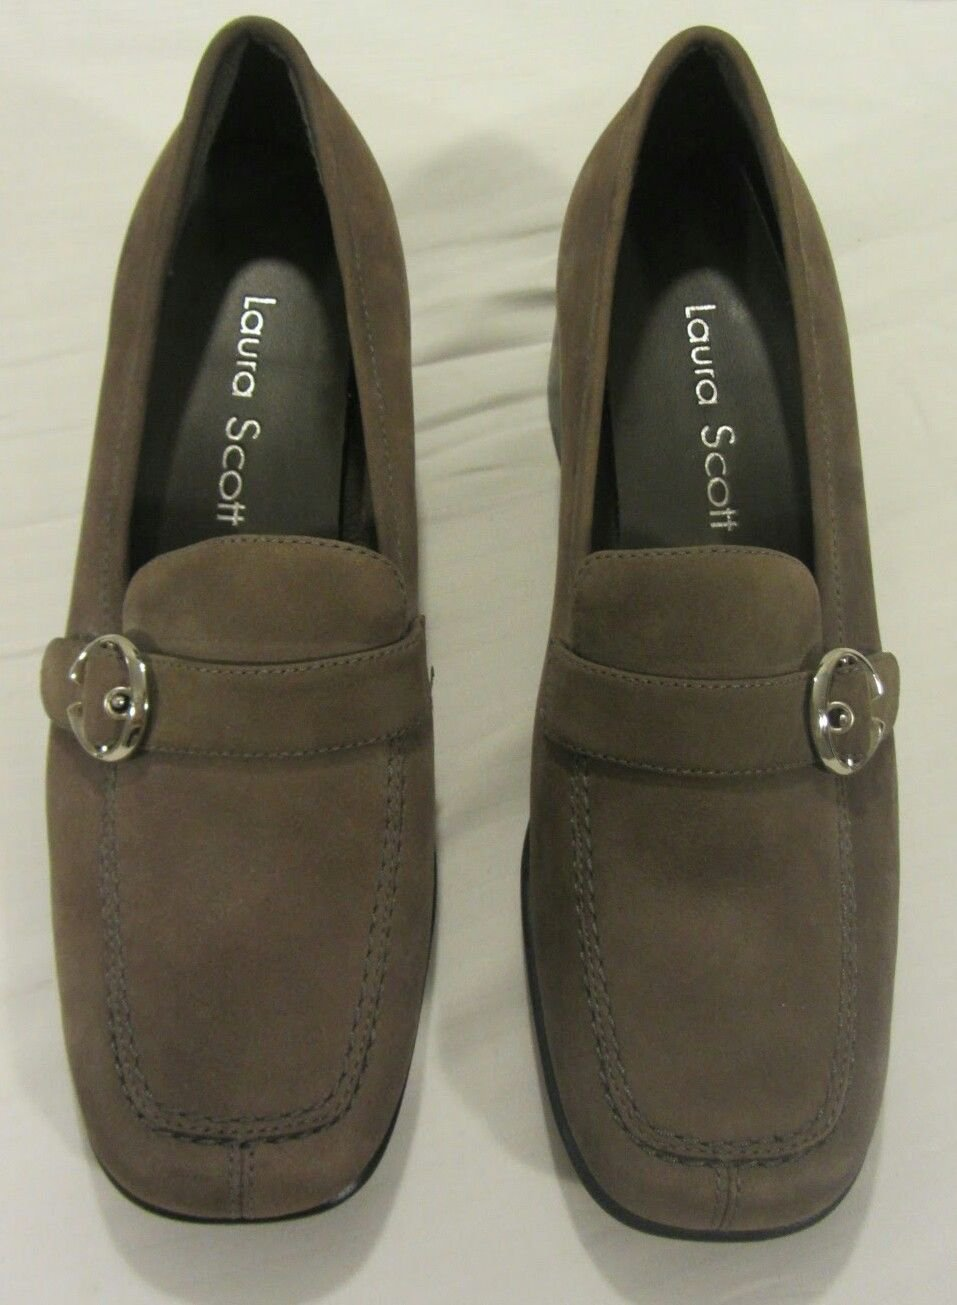 Laura Scott leather belted slip on oxfords taupe brown size 7